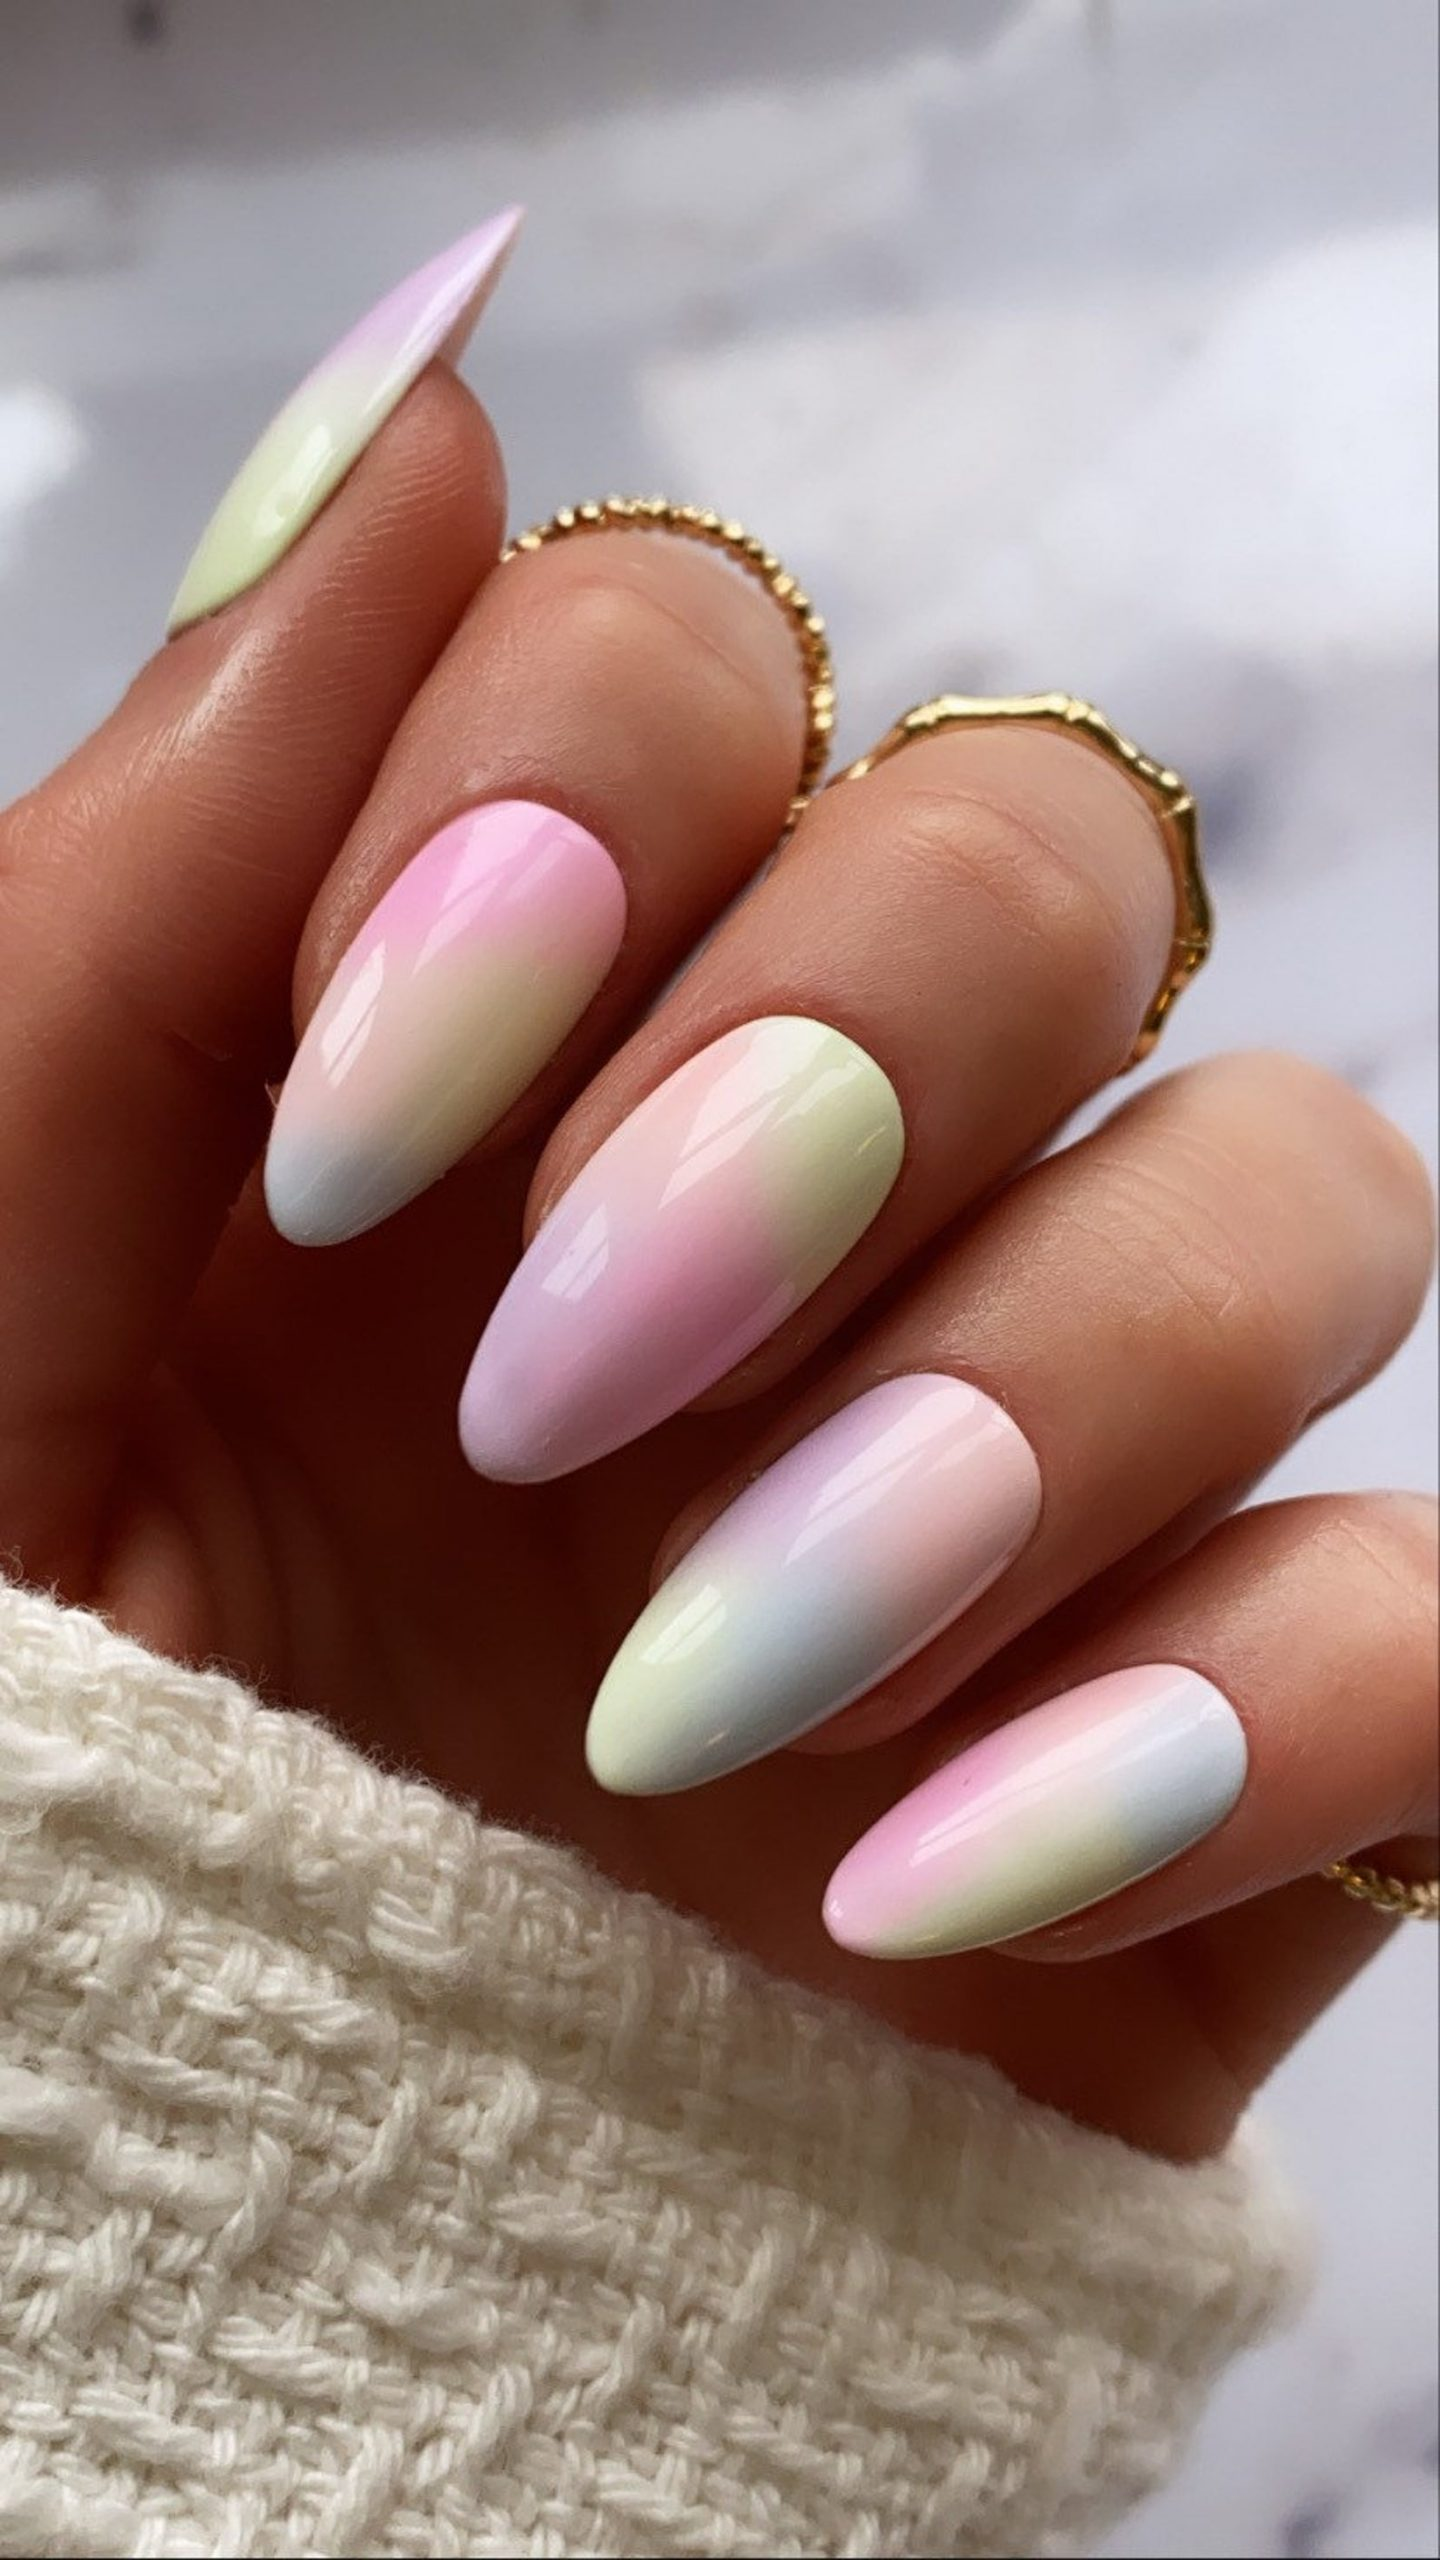 Pastel pink and tie dye nails